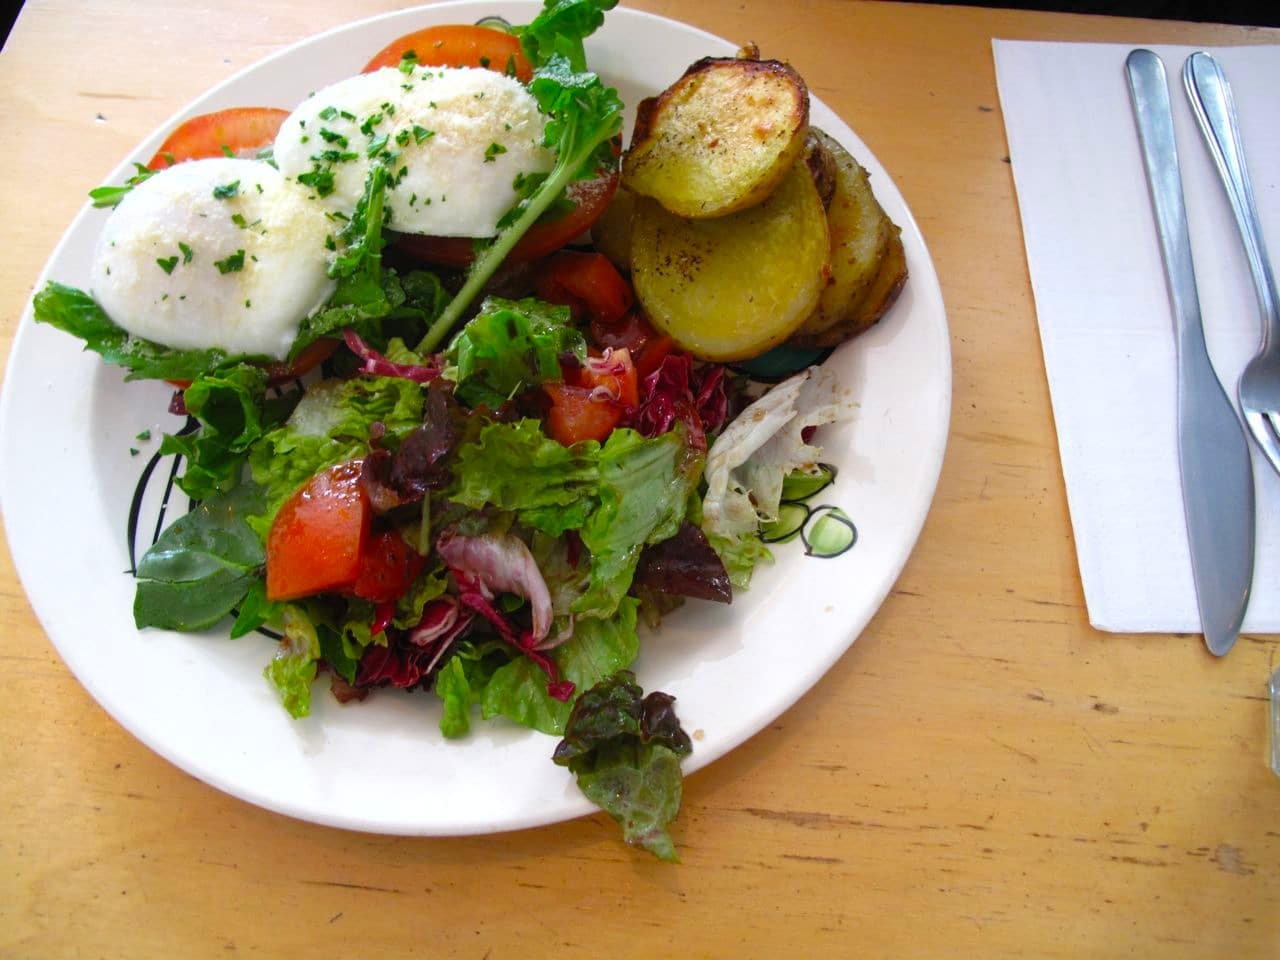 Perfectly poached eggs with fresh green and roasted potatoes.